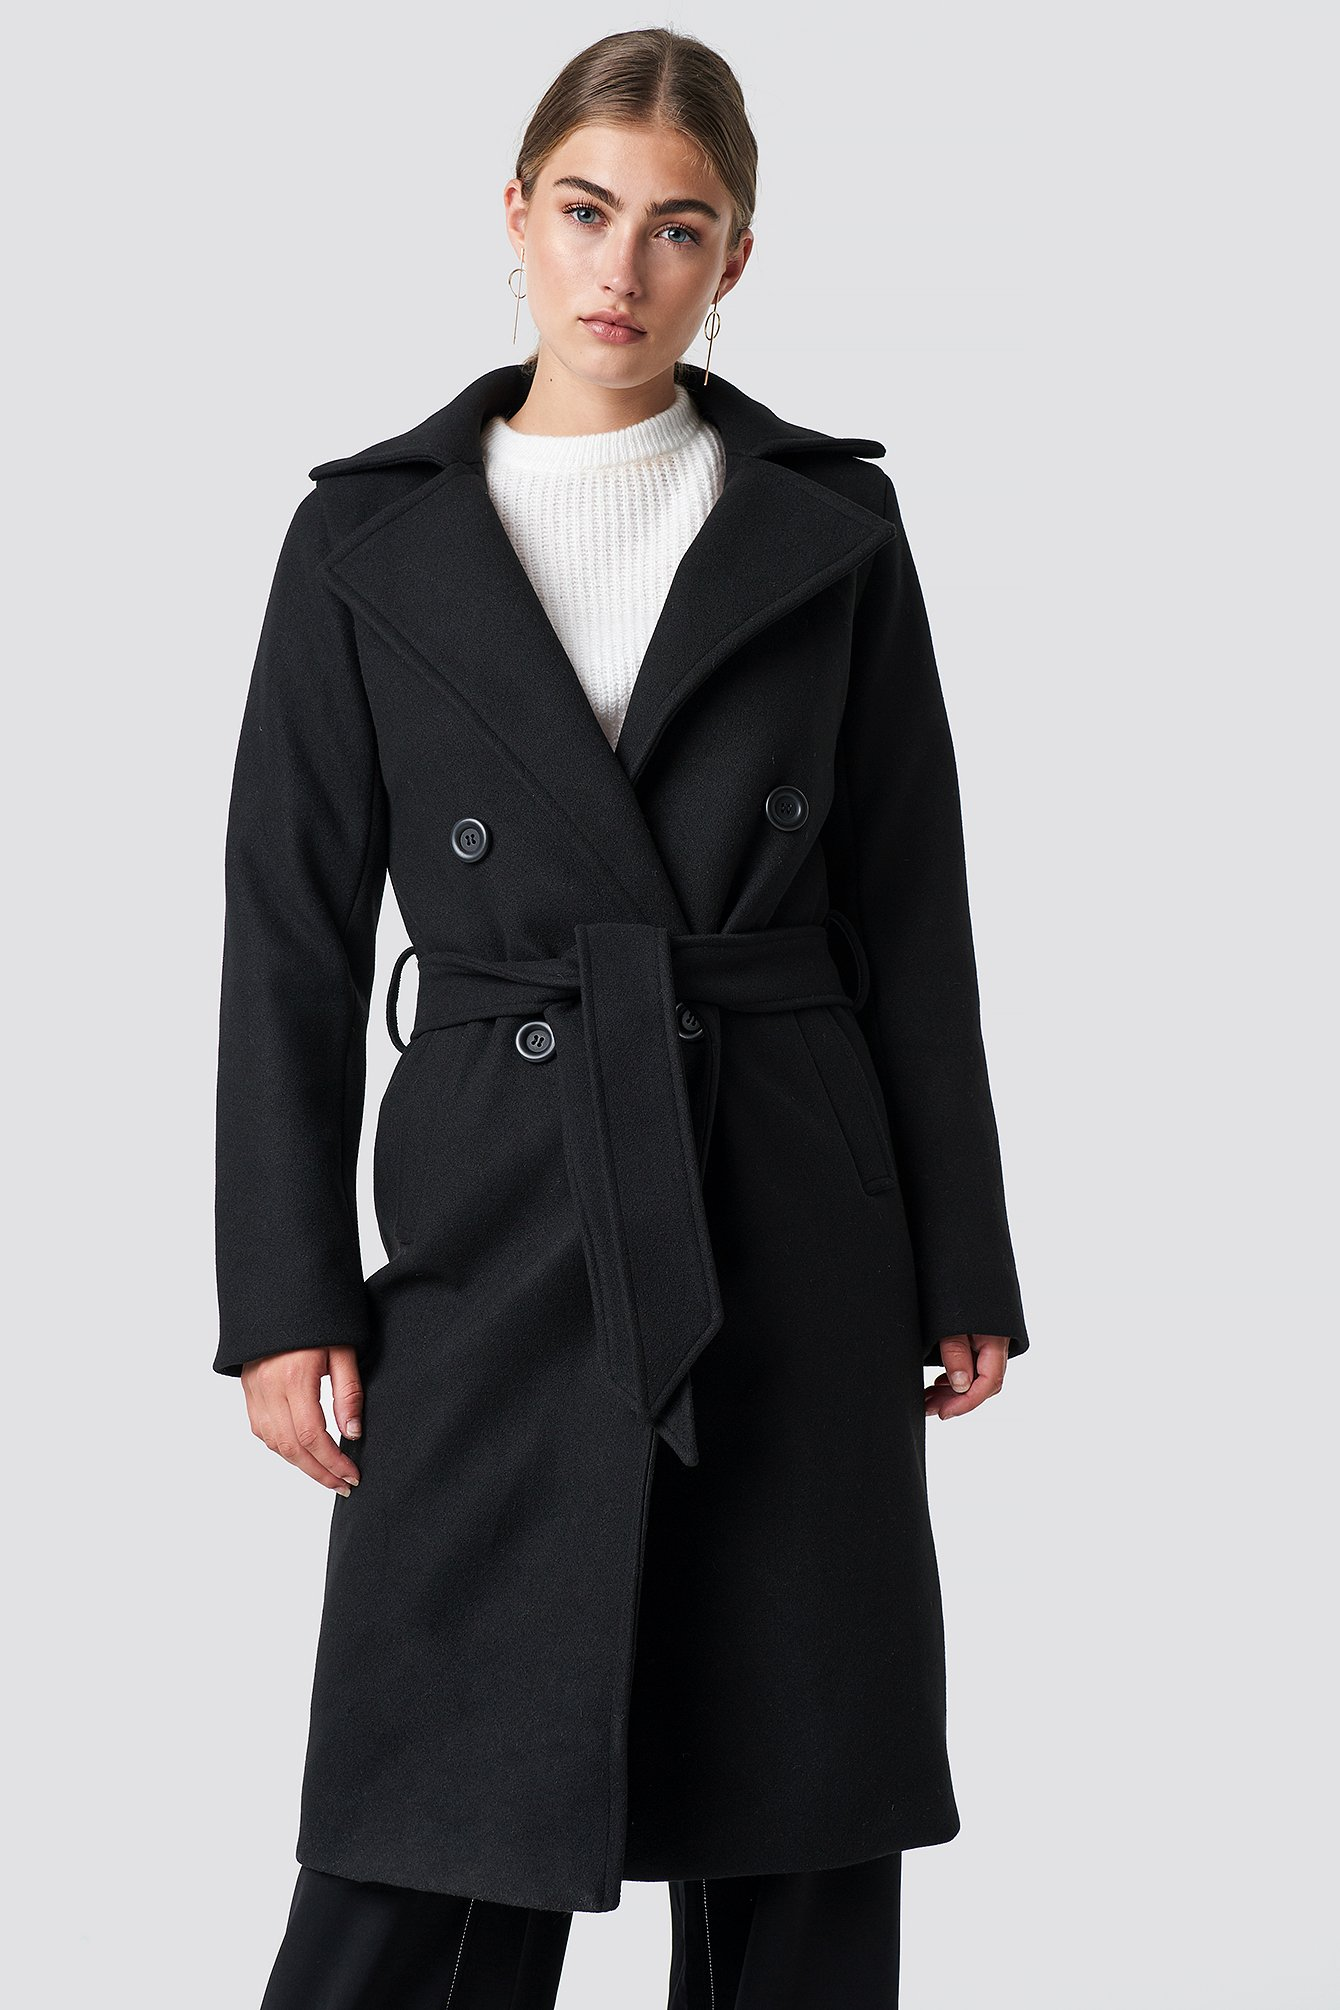 Tove Long Coat NA-KD.COM